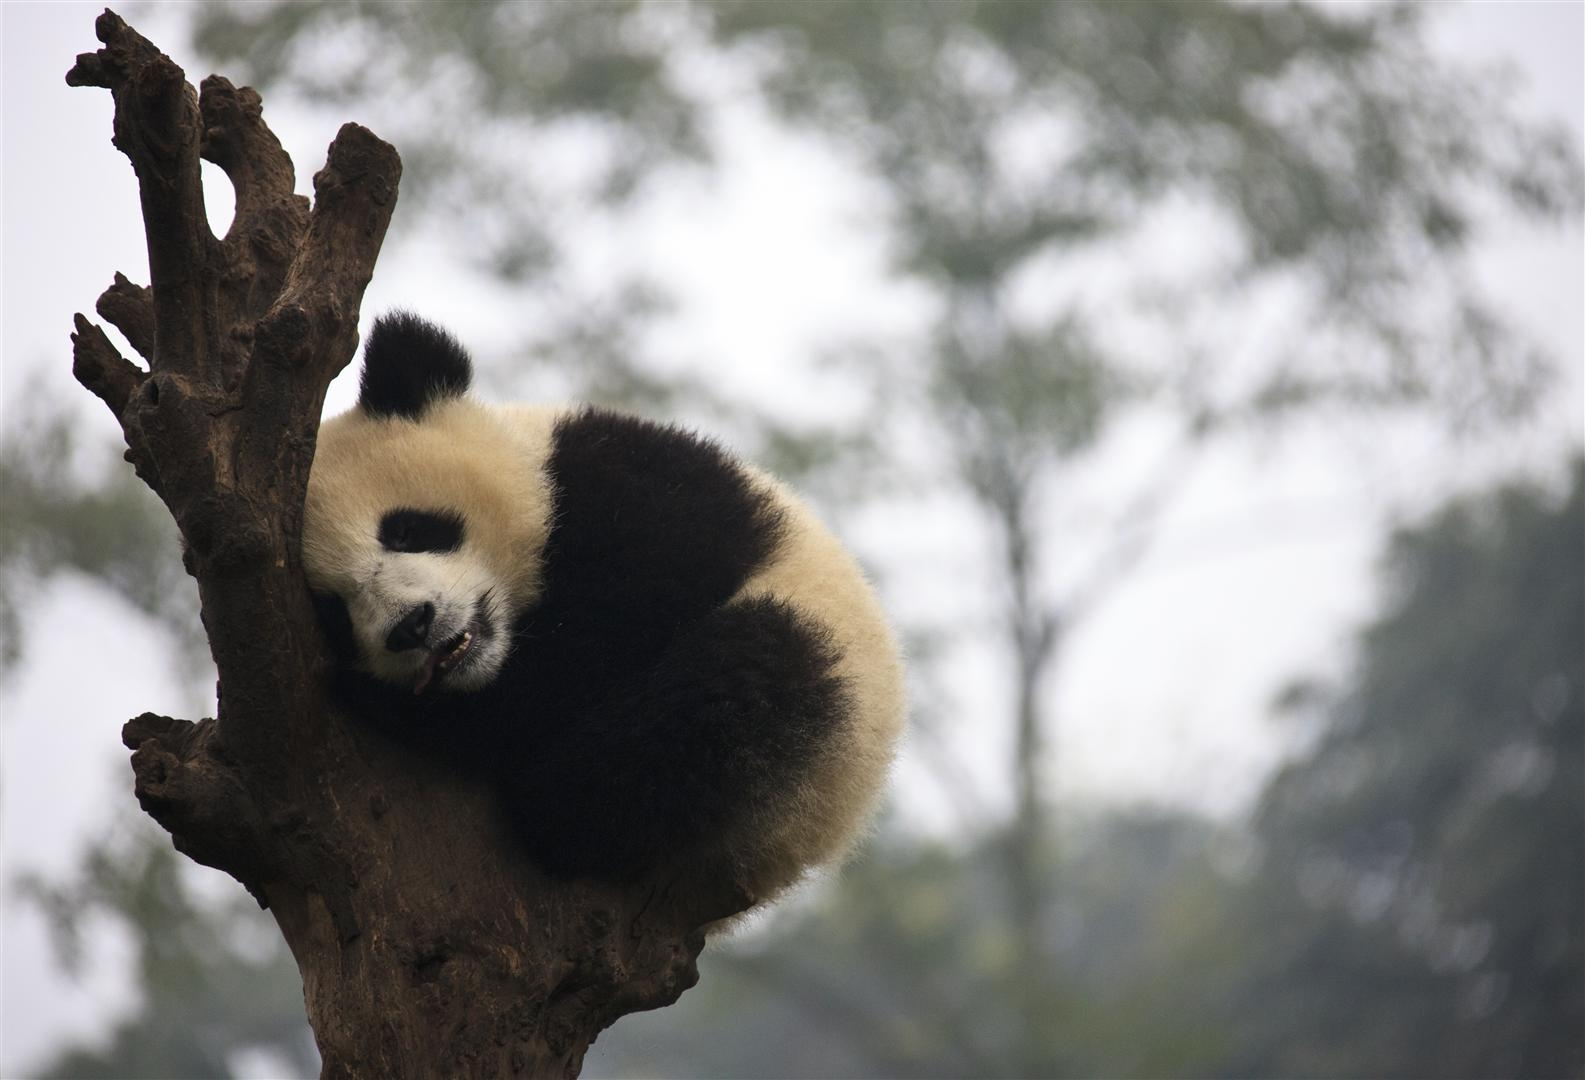 One year old Panda sleeping